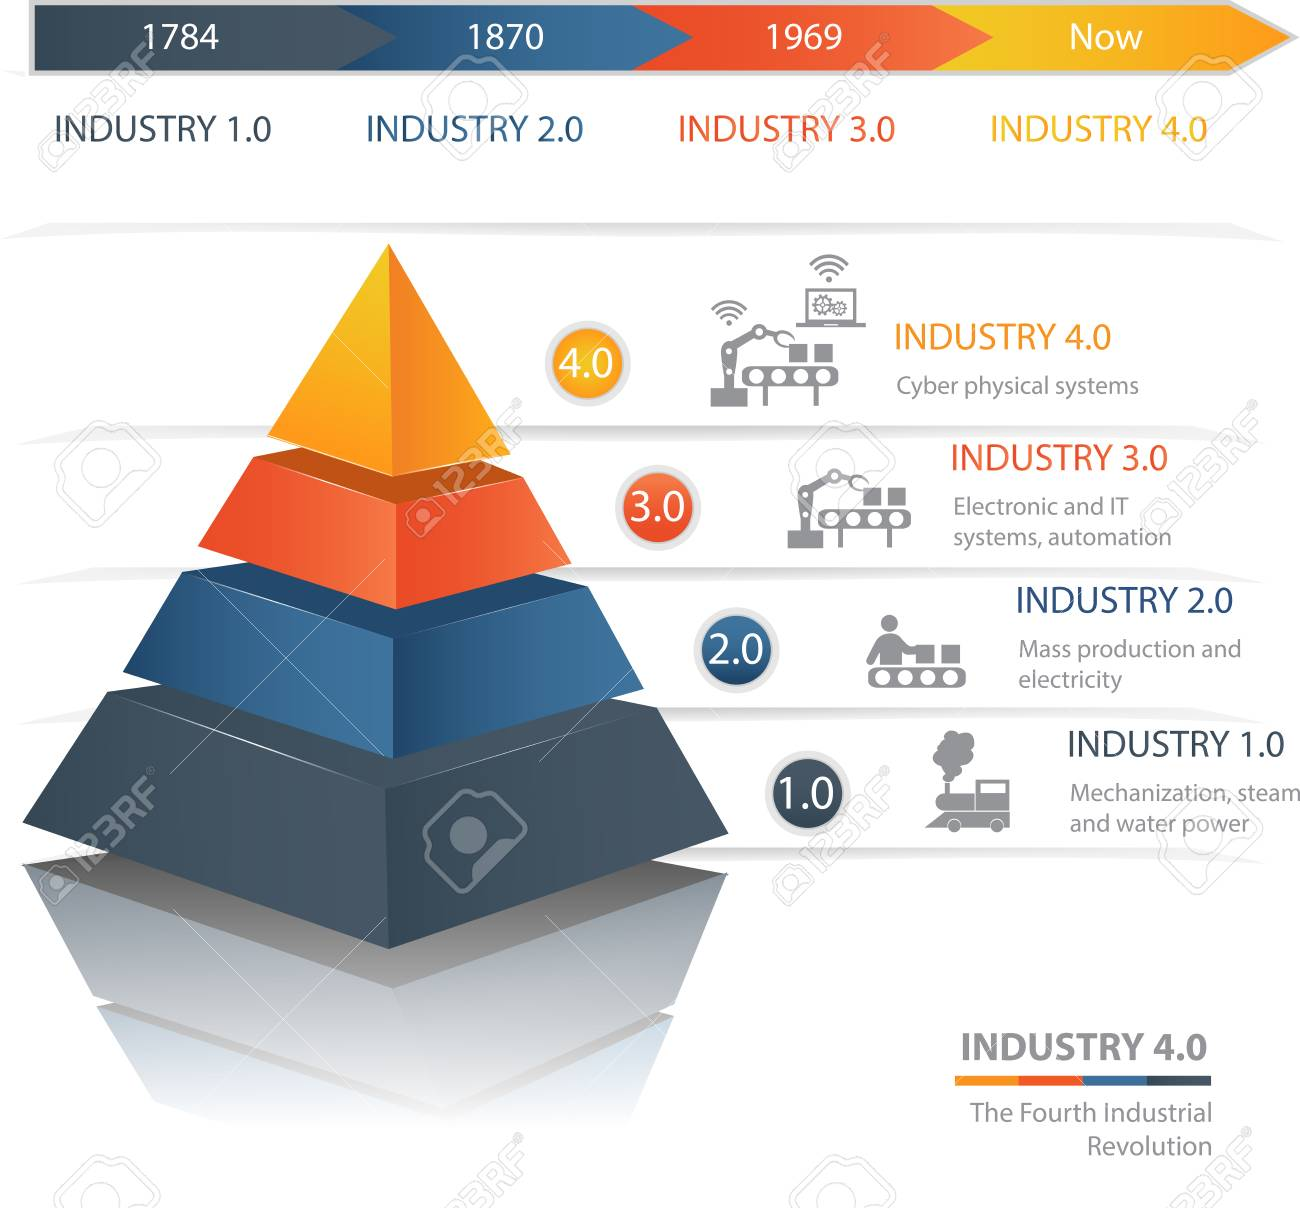 Industrie 4.0 The Fourth Industrial Revolution.Colorful pyramid chart. Useful for infographics and presentations. - 103872349